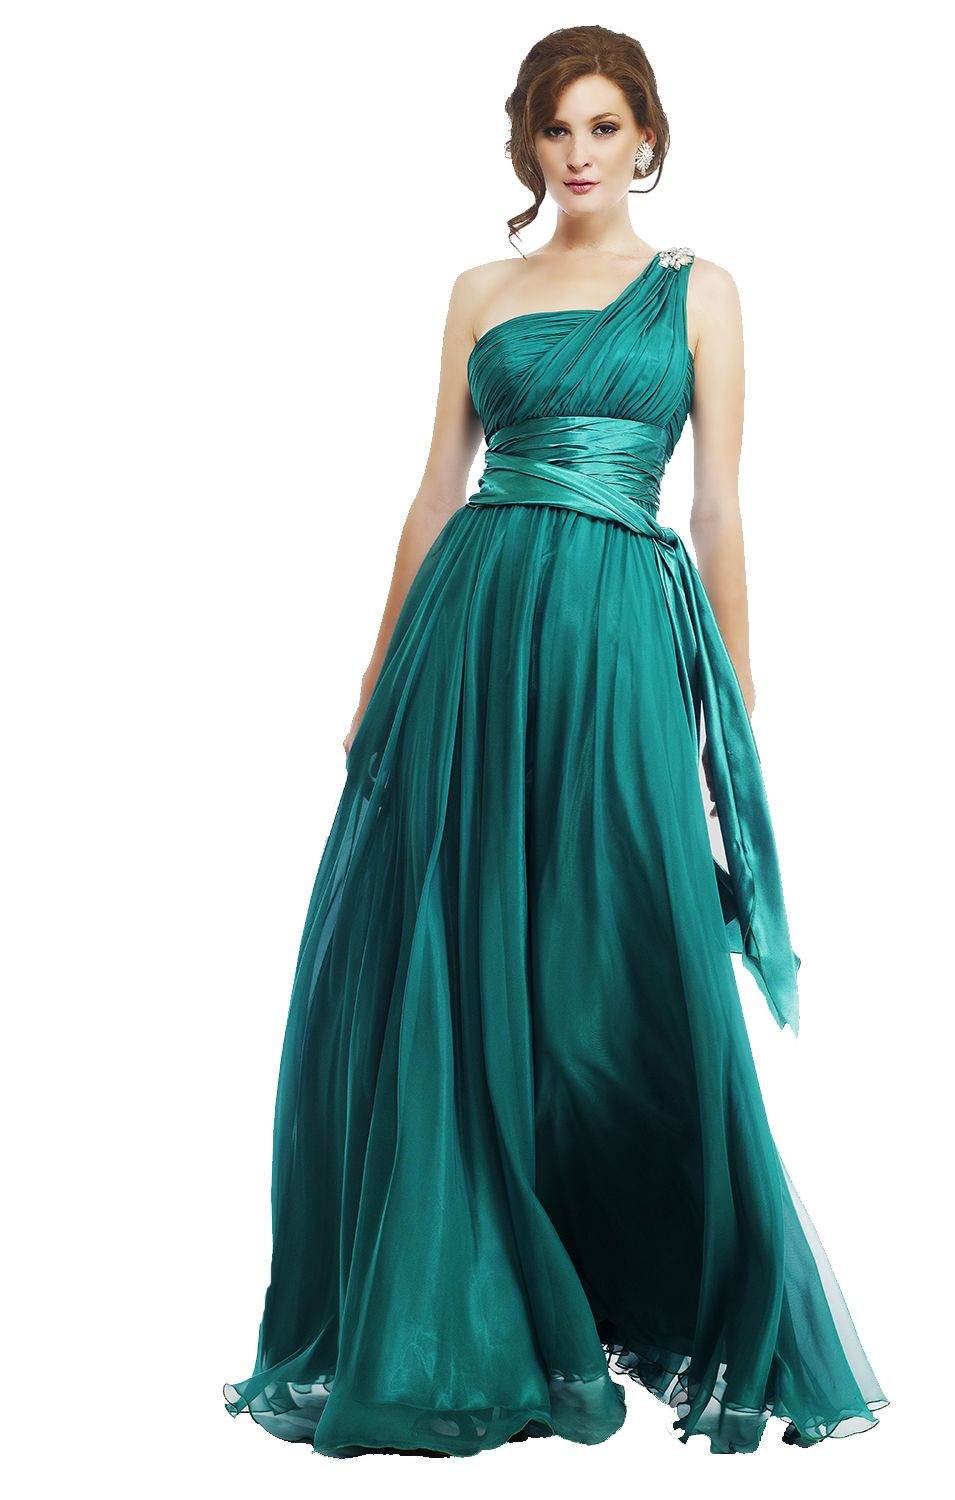 Beautiful Greek Style Gren Long Prom Dress B U Tfull Dresses